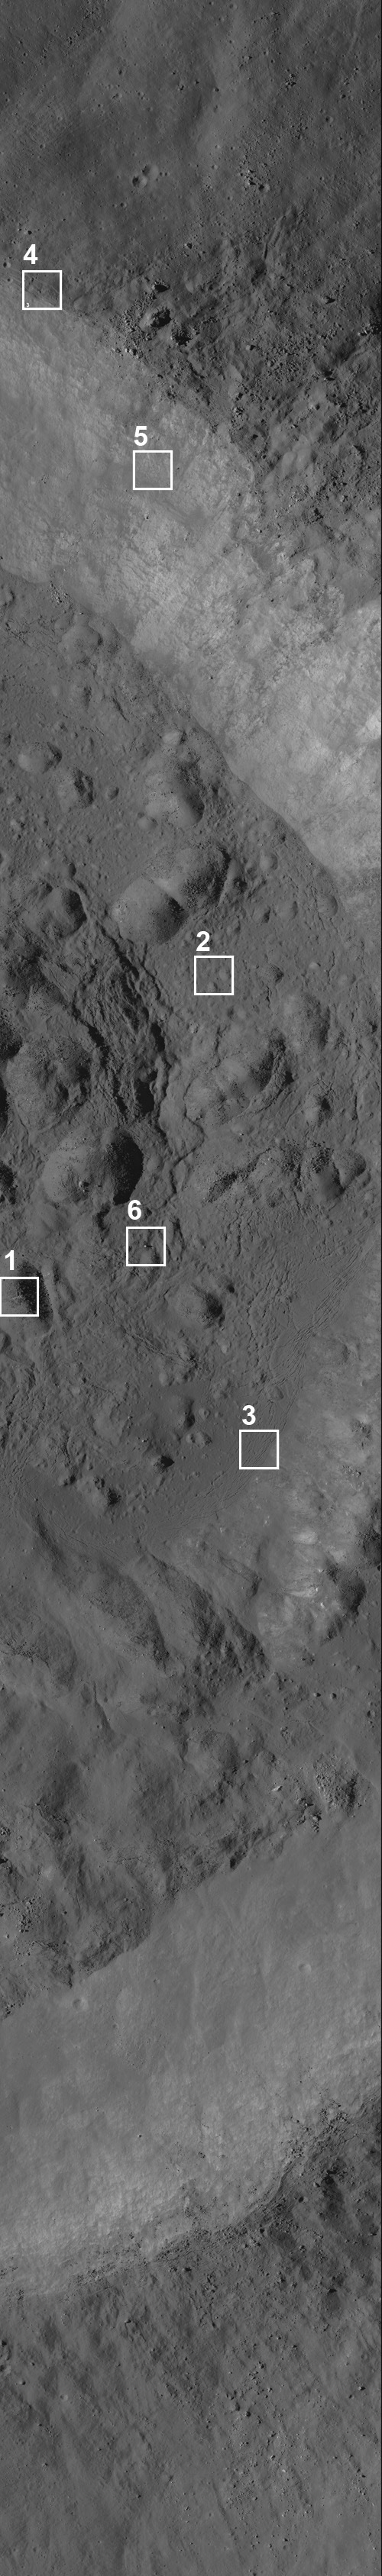 Necho crater on the Moon